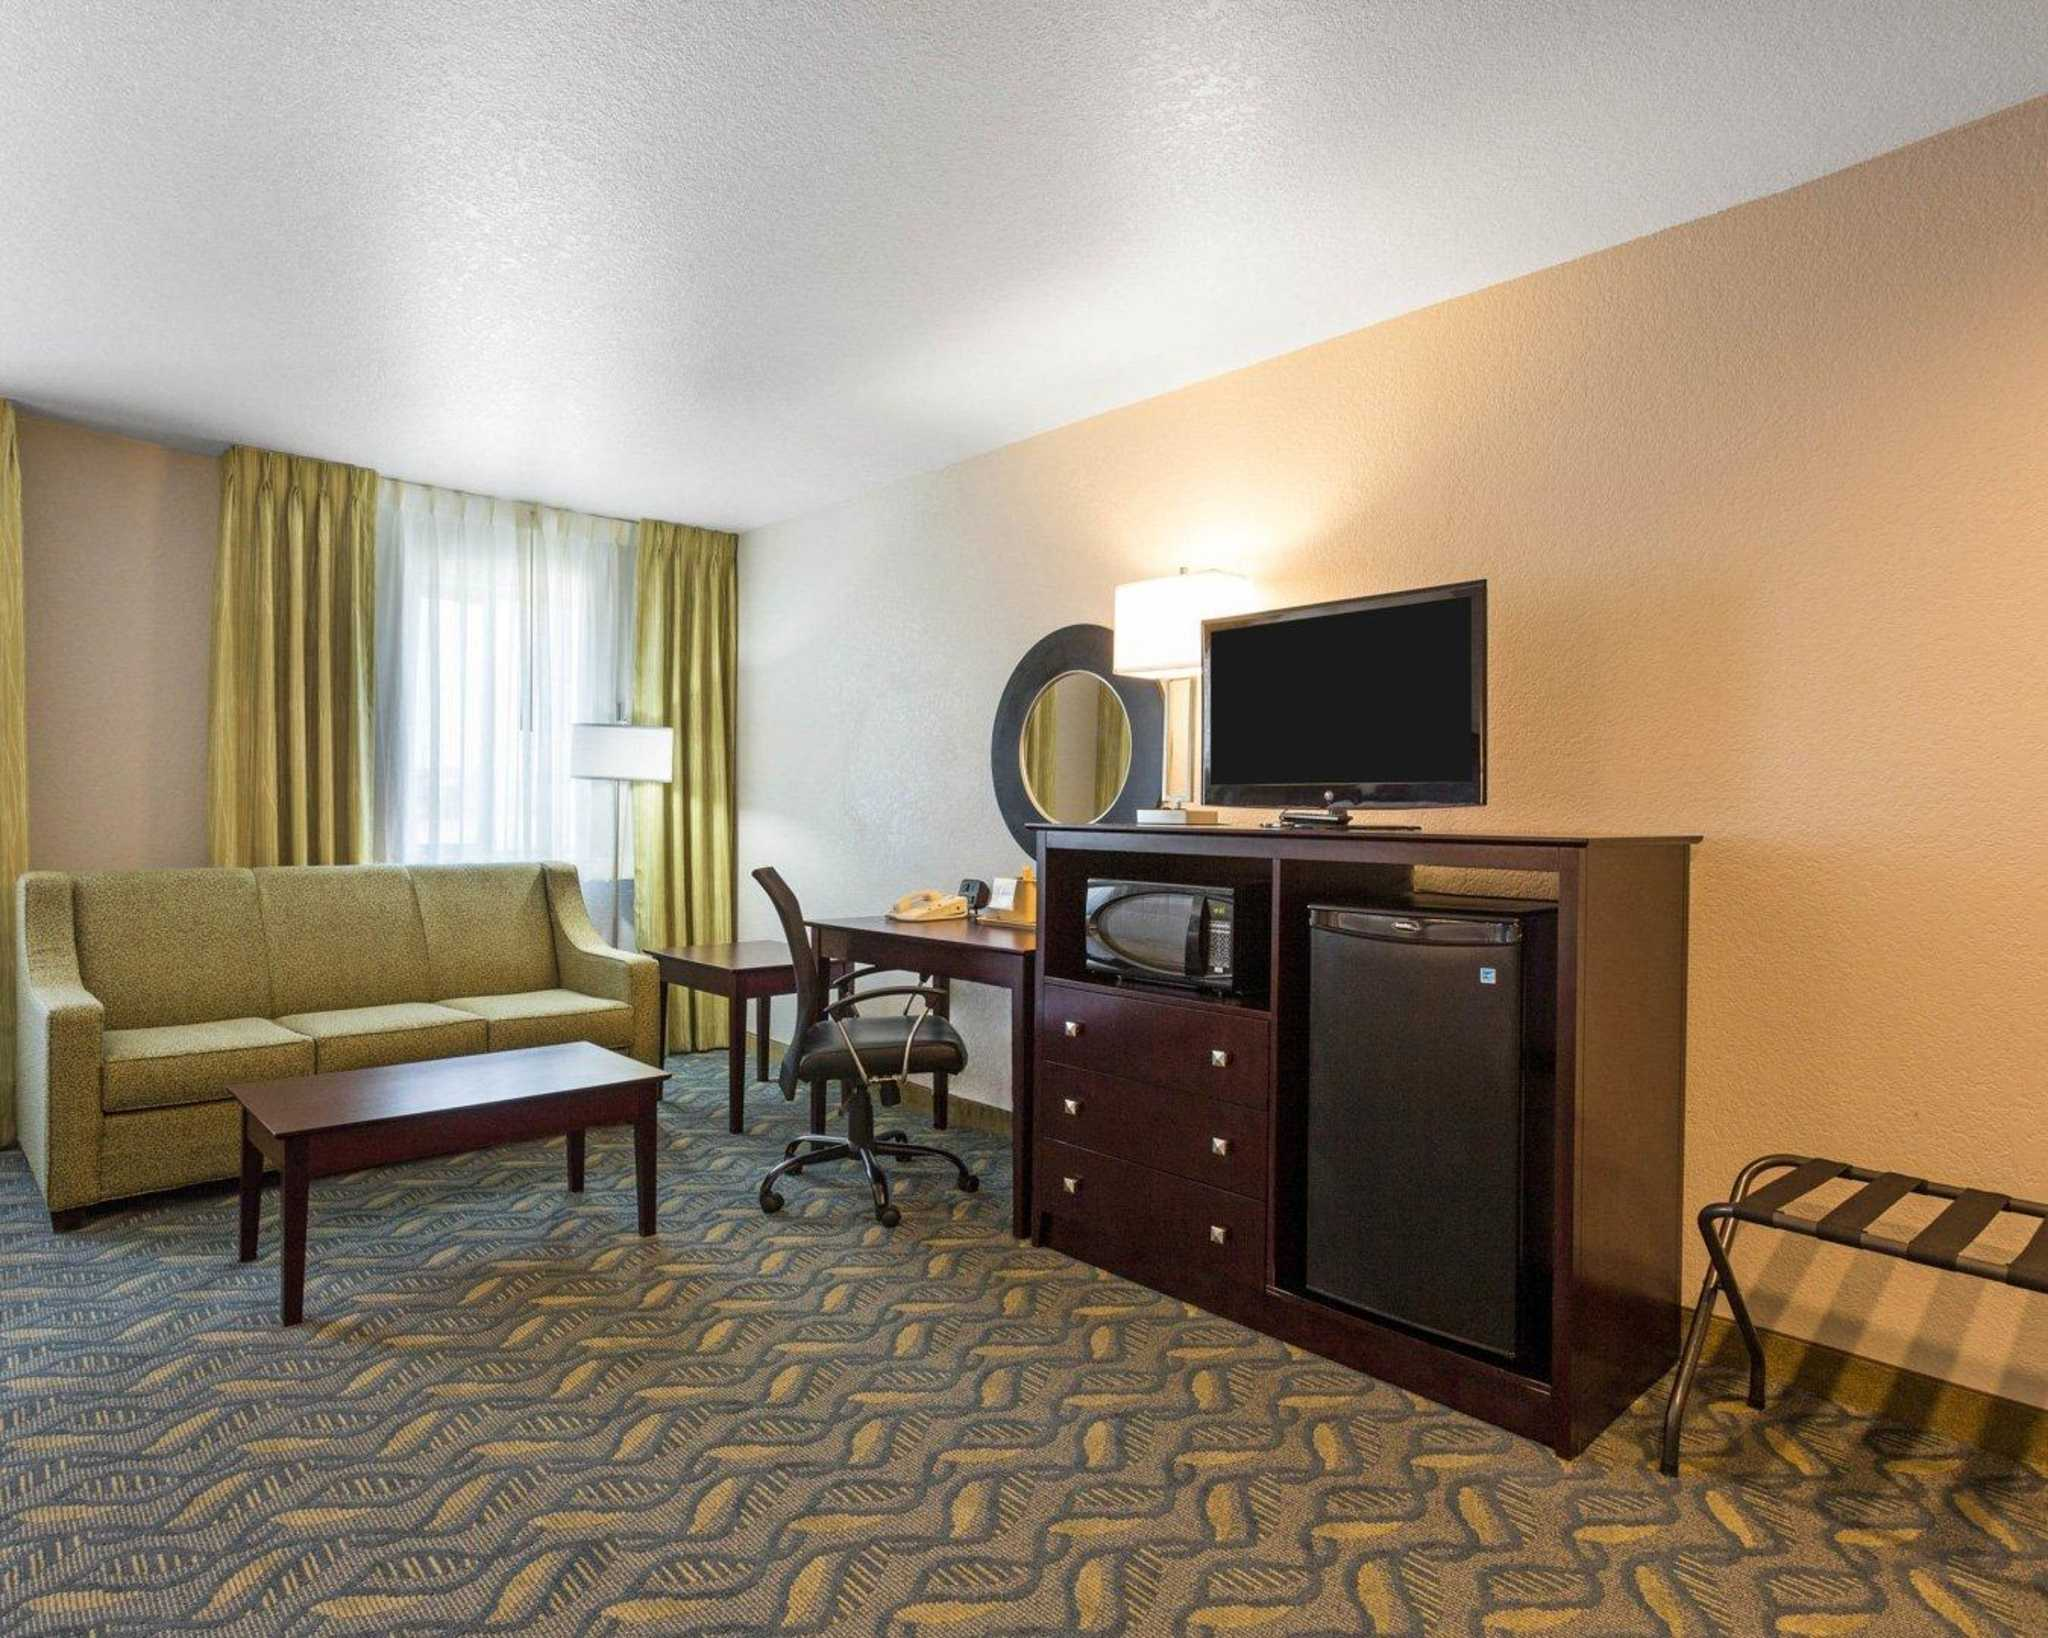 Quality Inn image 7